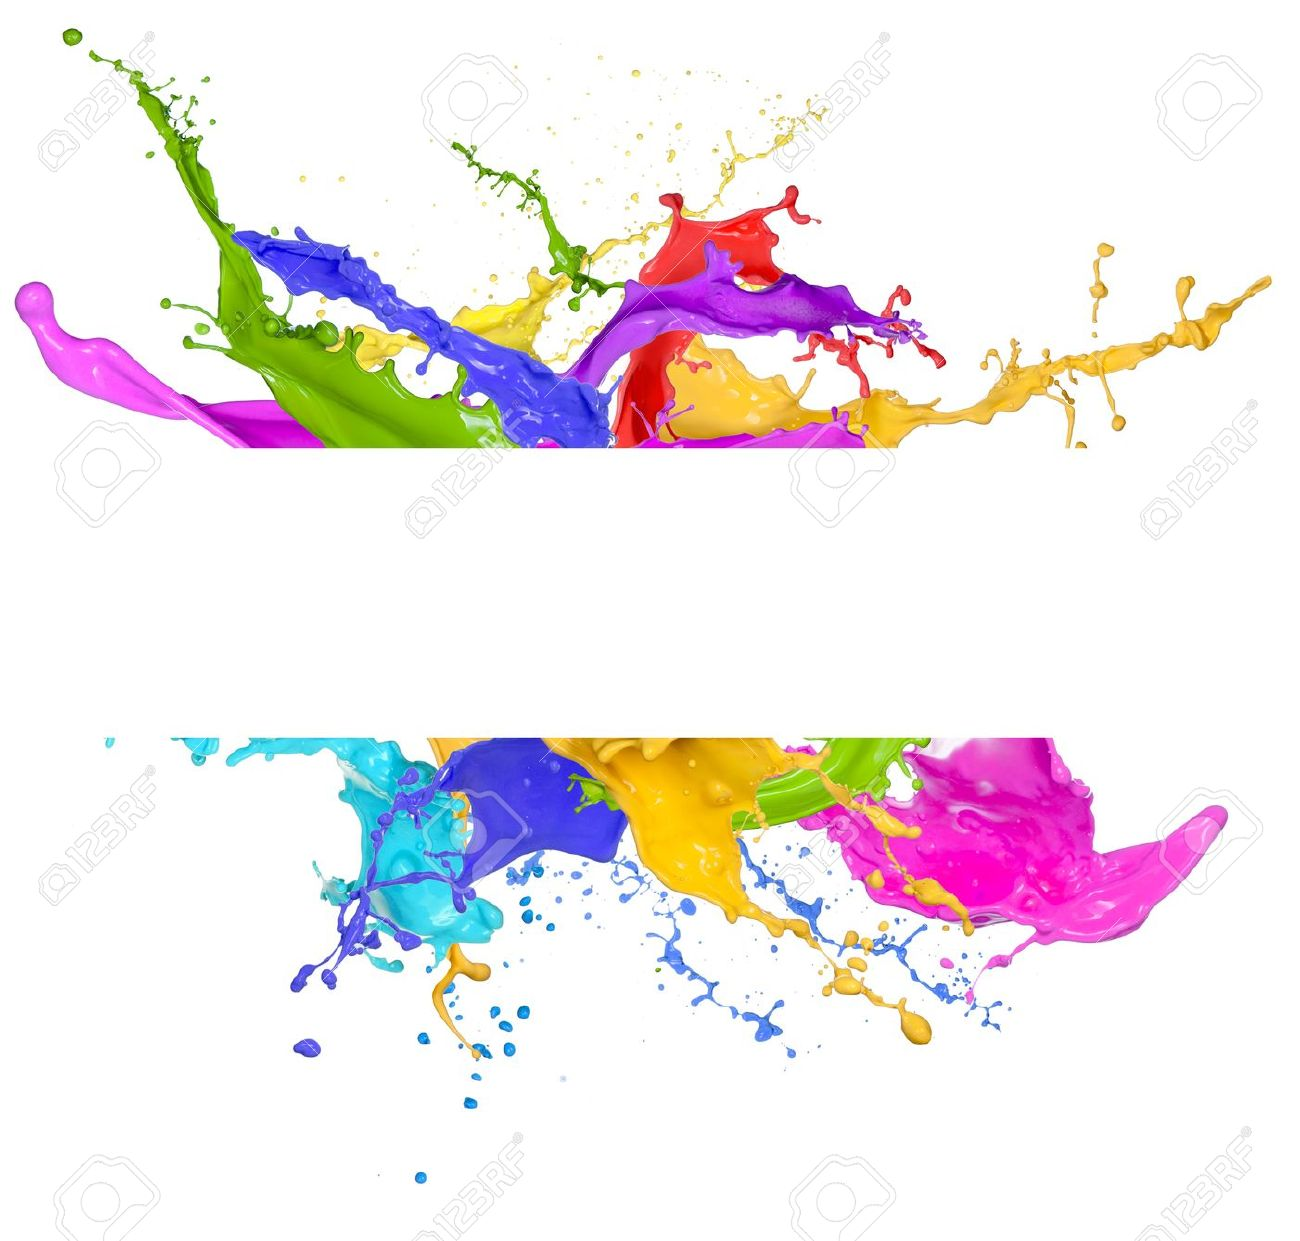 Colored splashes in abstract shape, isolated on white background Stock Photo - 18577172